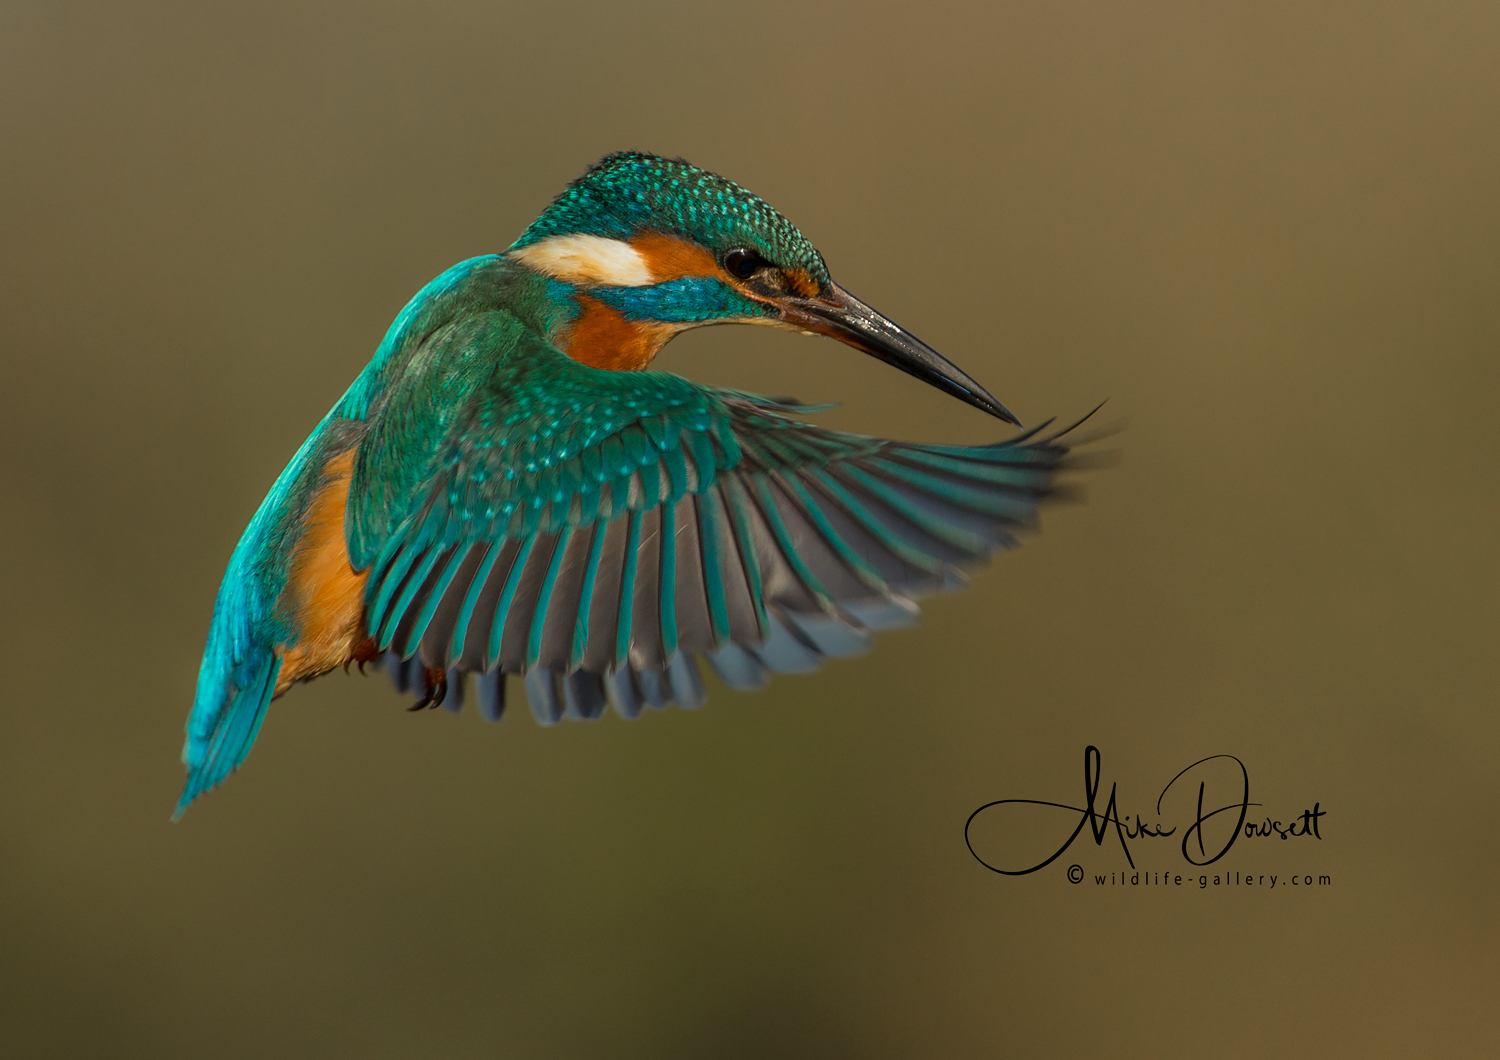 Wildlife Gallery Incredible Kingfisher Photos